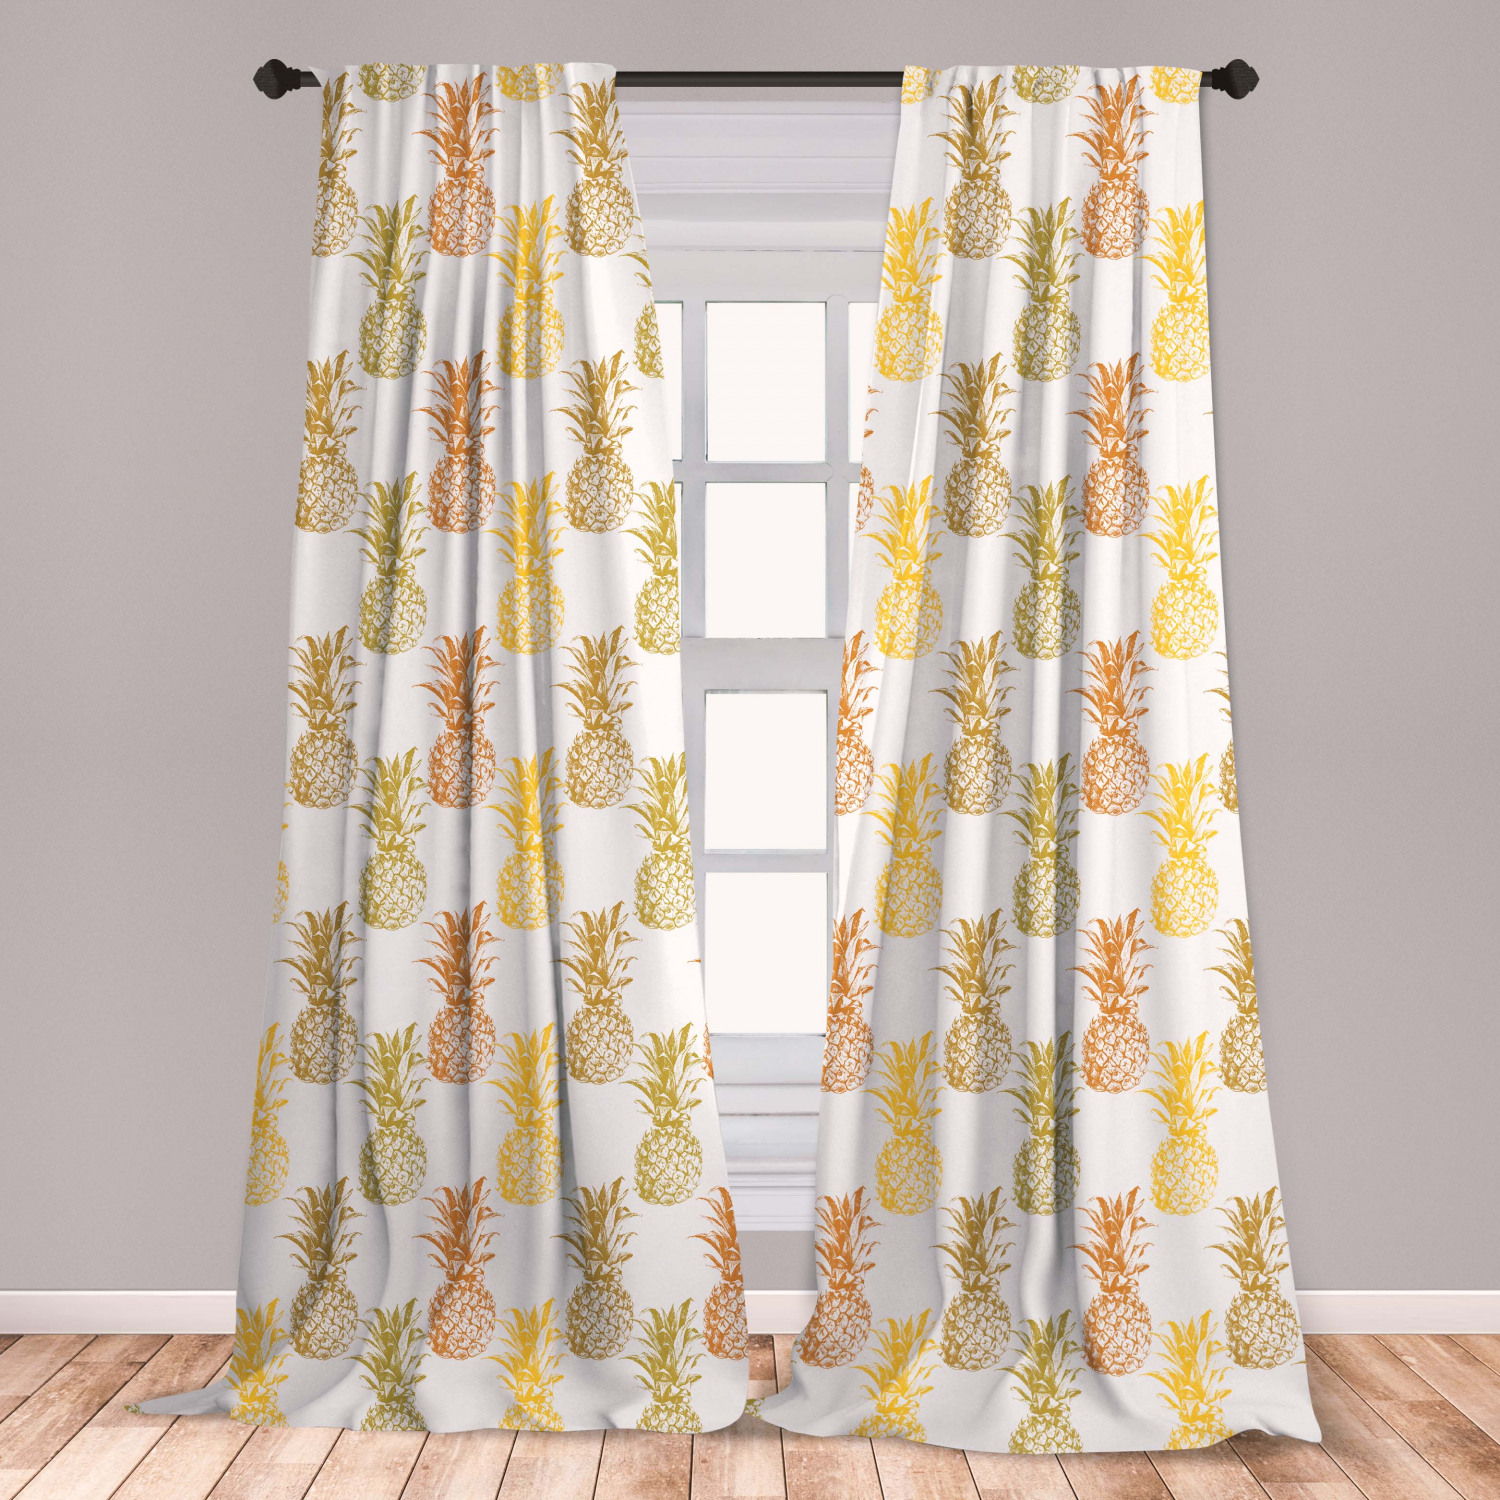 Pineapple Curtains 2 Panels Set, Hand Drawn Simply